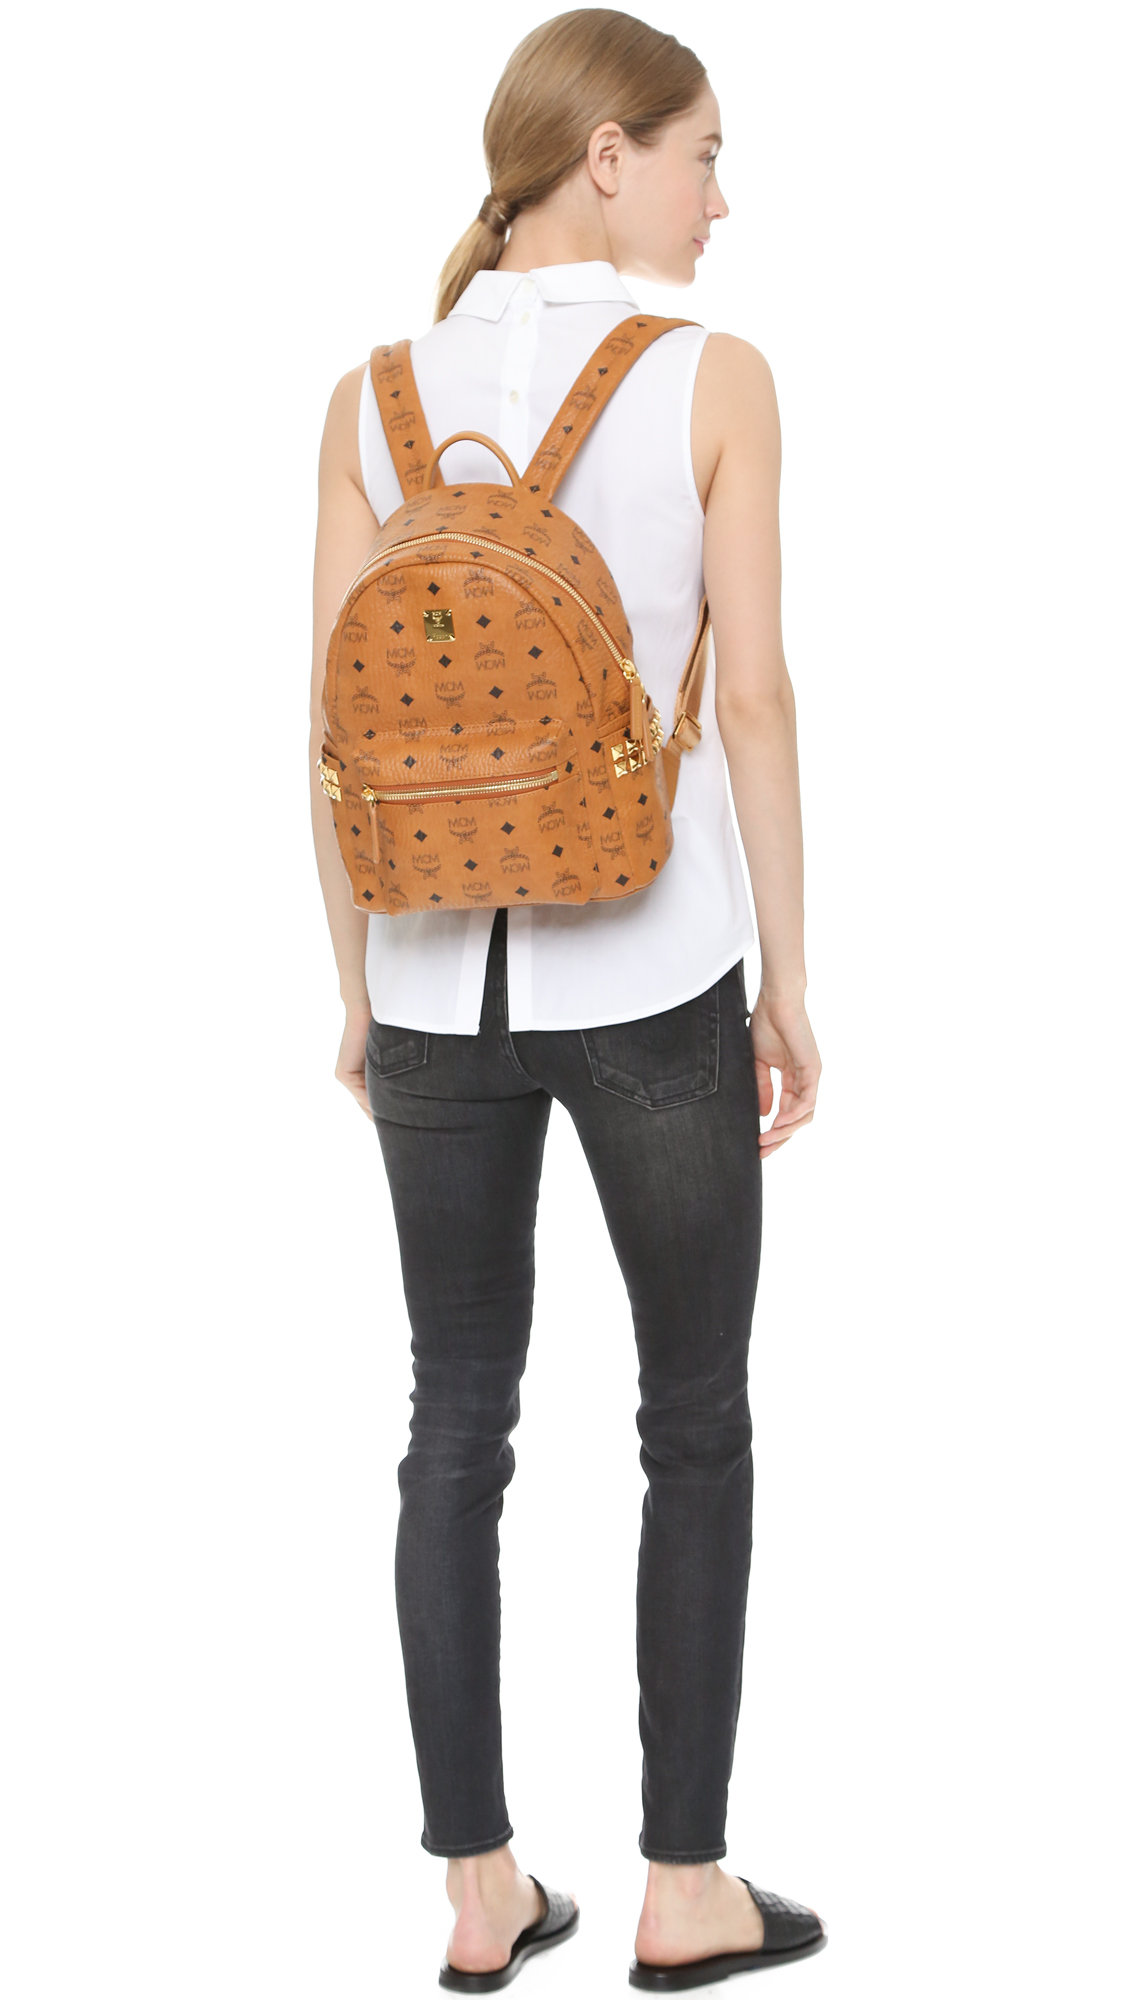 286c03c80e0 Small White Mcm Backpack - CEAGESP